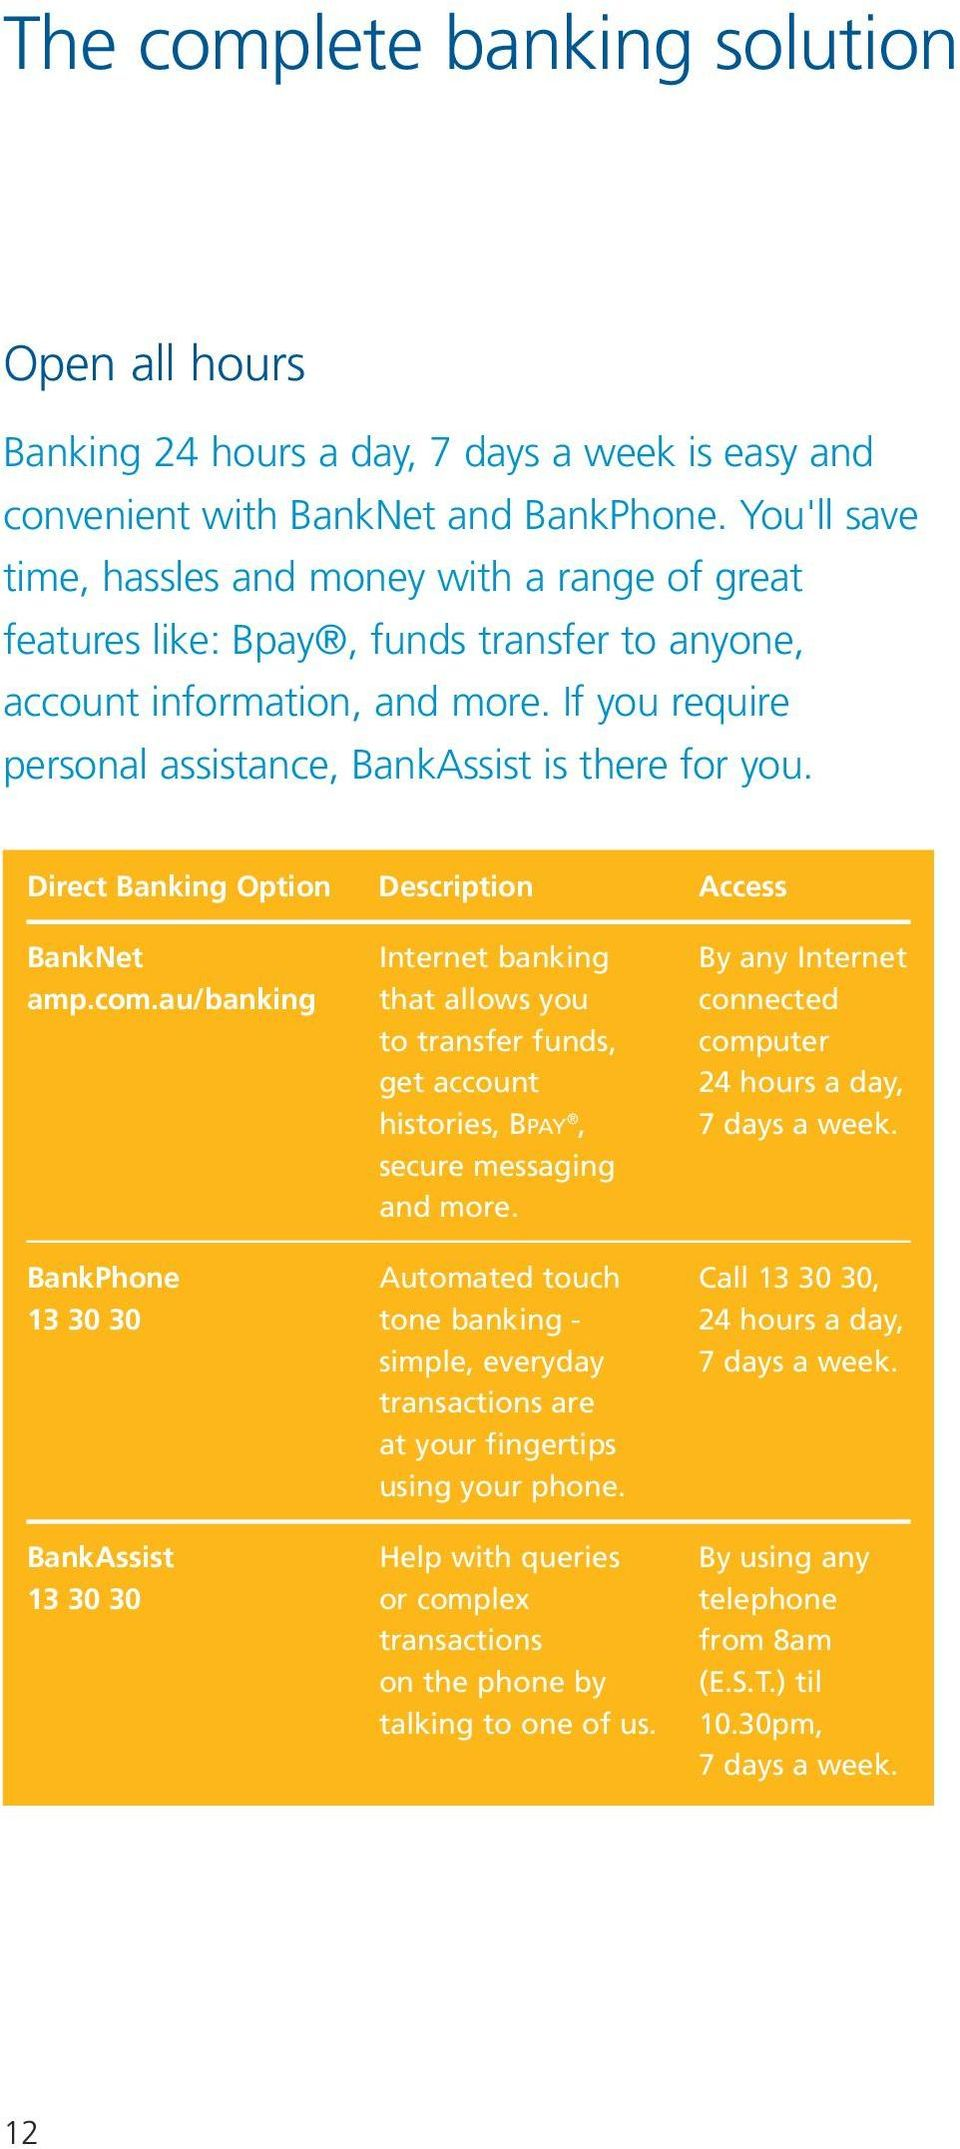 Direct Banking Option Description Access BankNet Internet banking By any Internet amp.com.